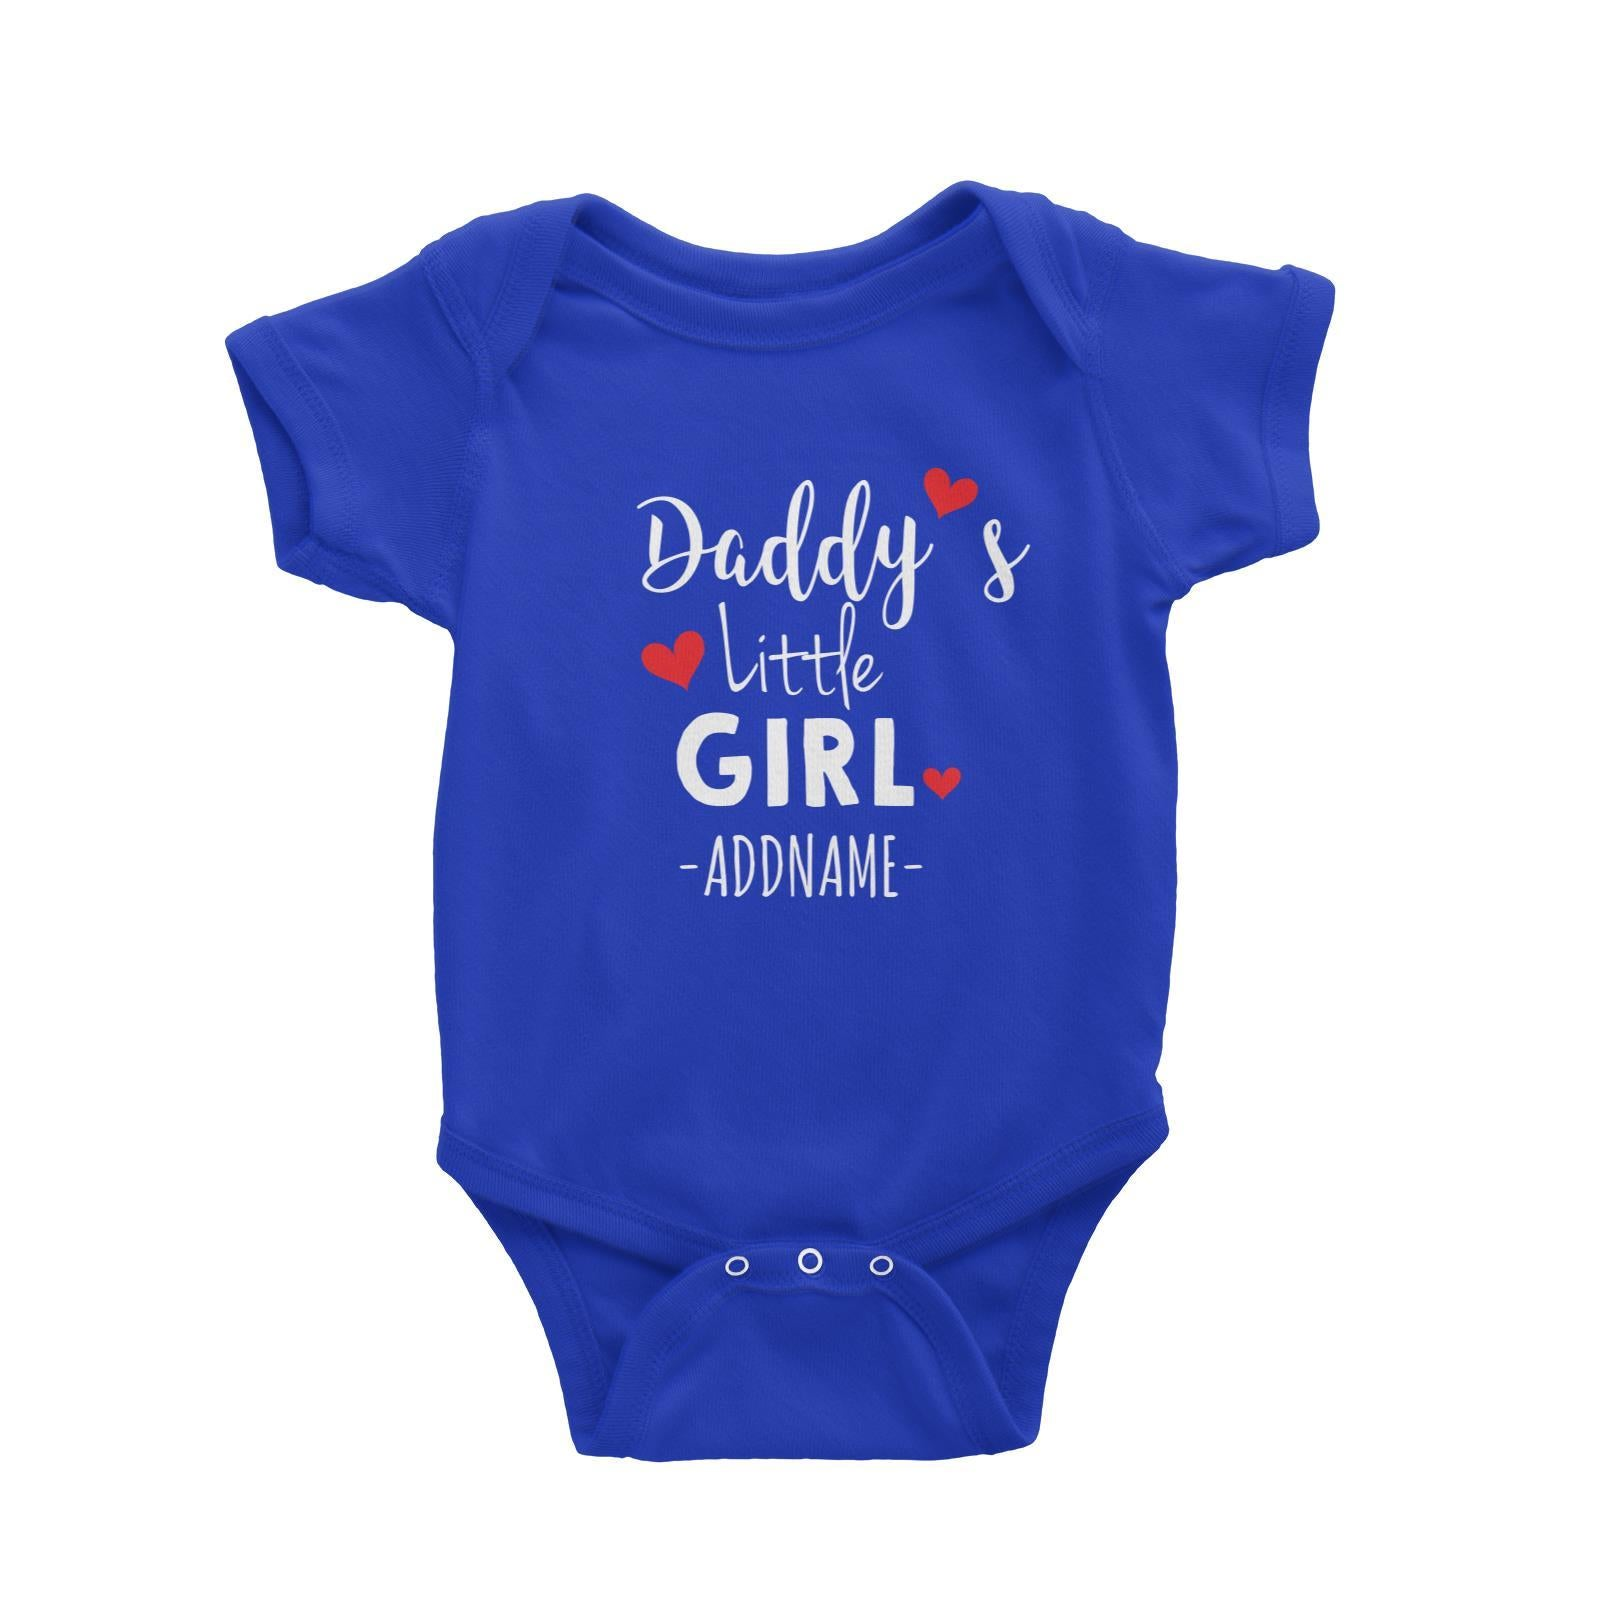 Daddy's Little Girl Addname Baby Romper Personalizable Designs Basic Newborn